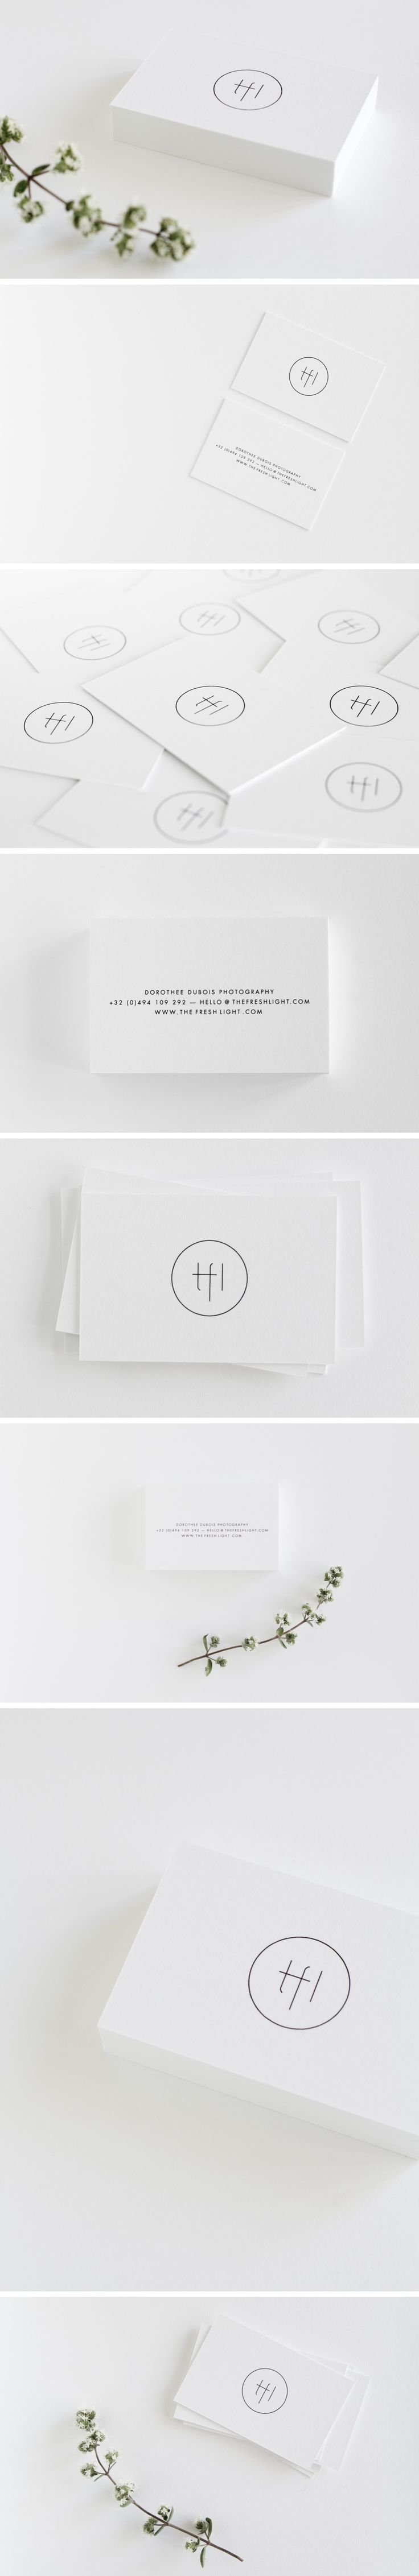 I like the look of a fresh minimal initial logo, that i can easily design onto artworks & display stands